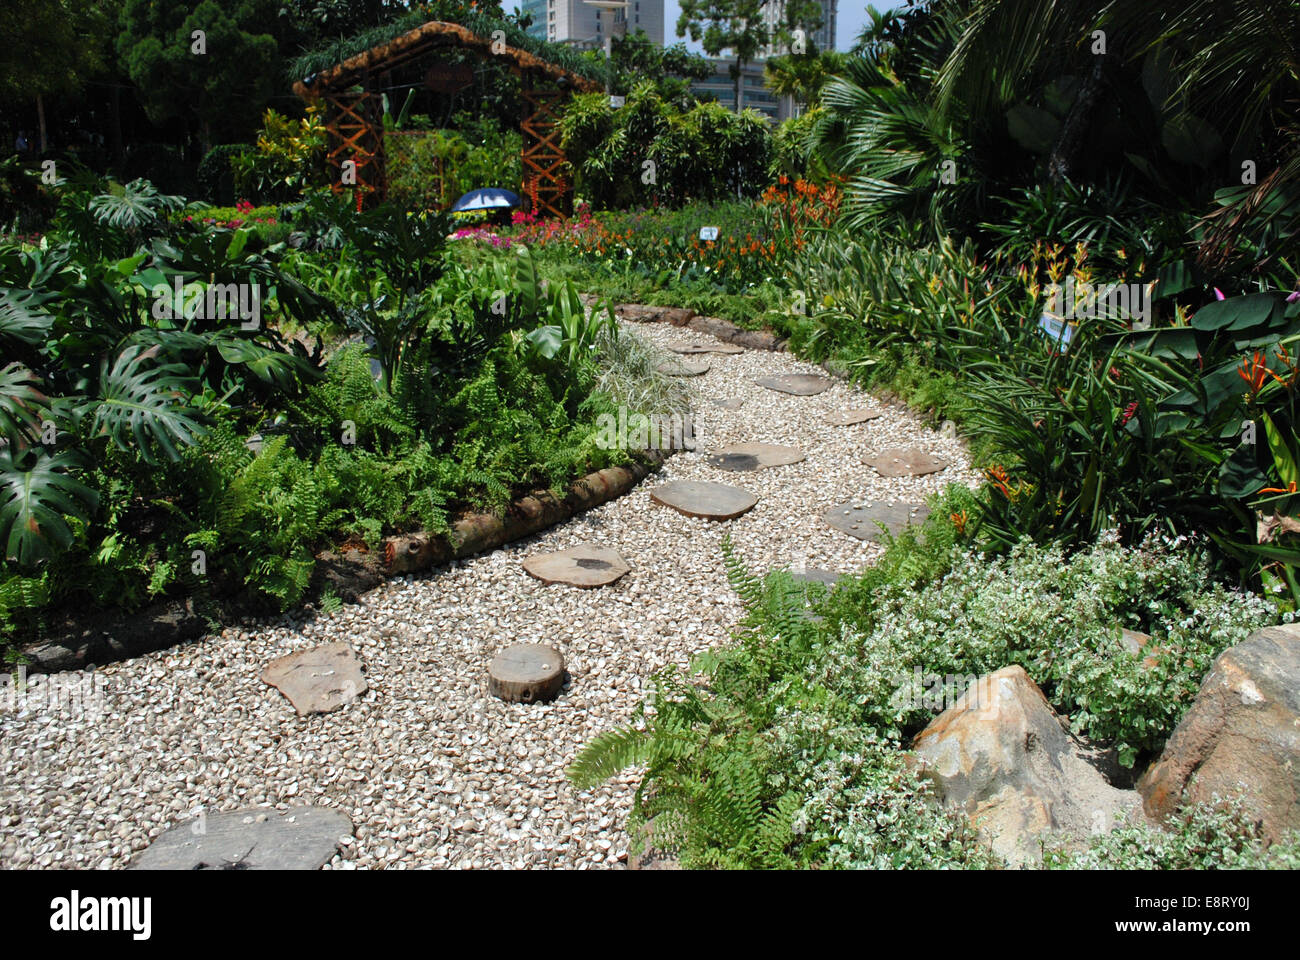 Landscaped Garden With Cockle Shells And Wood Bloks Foot Path